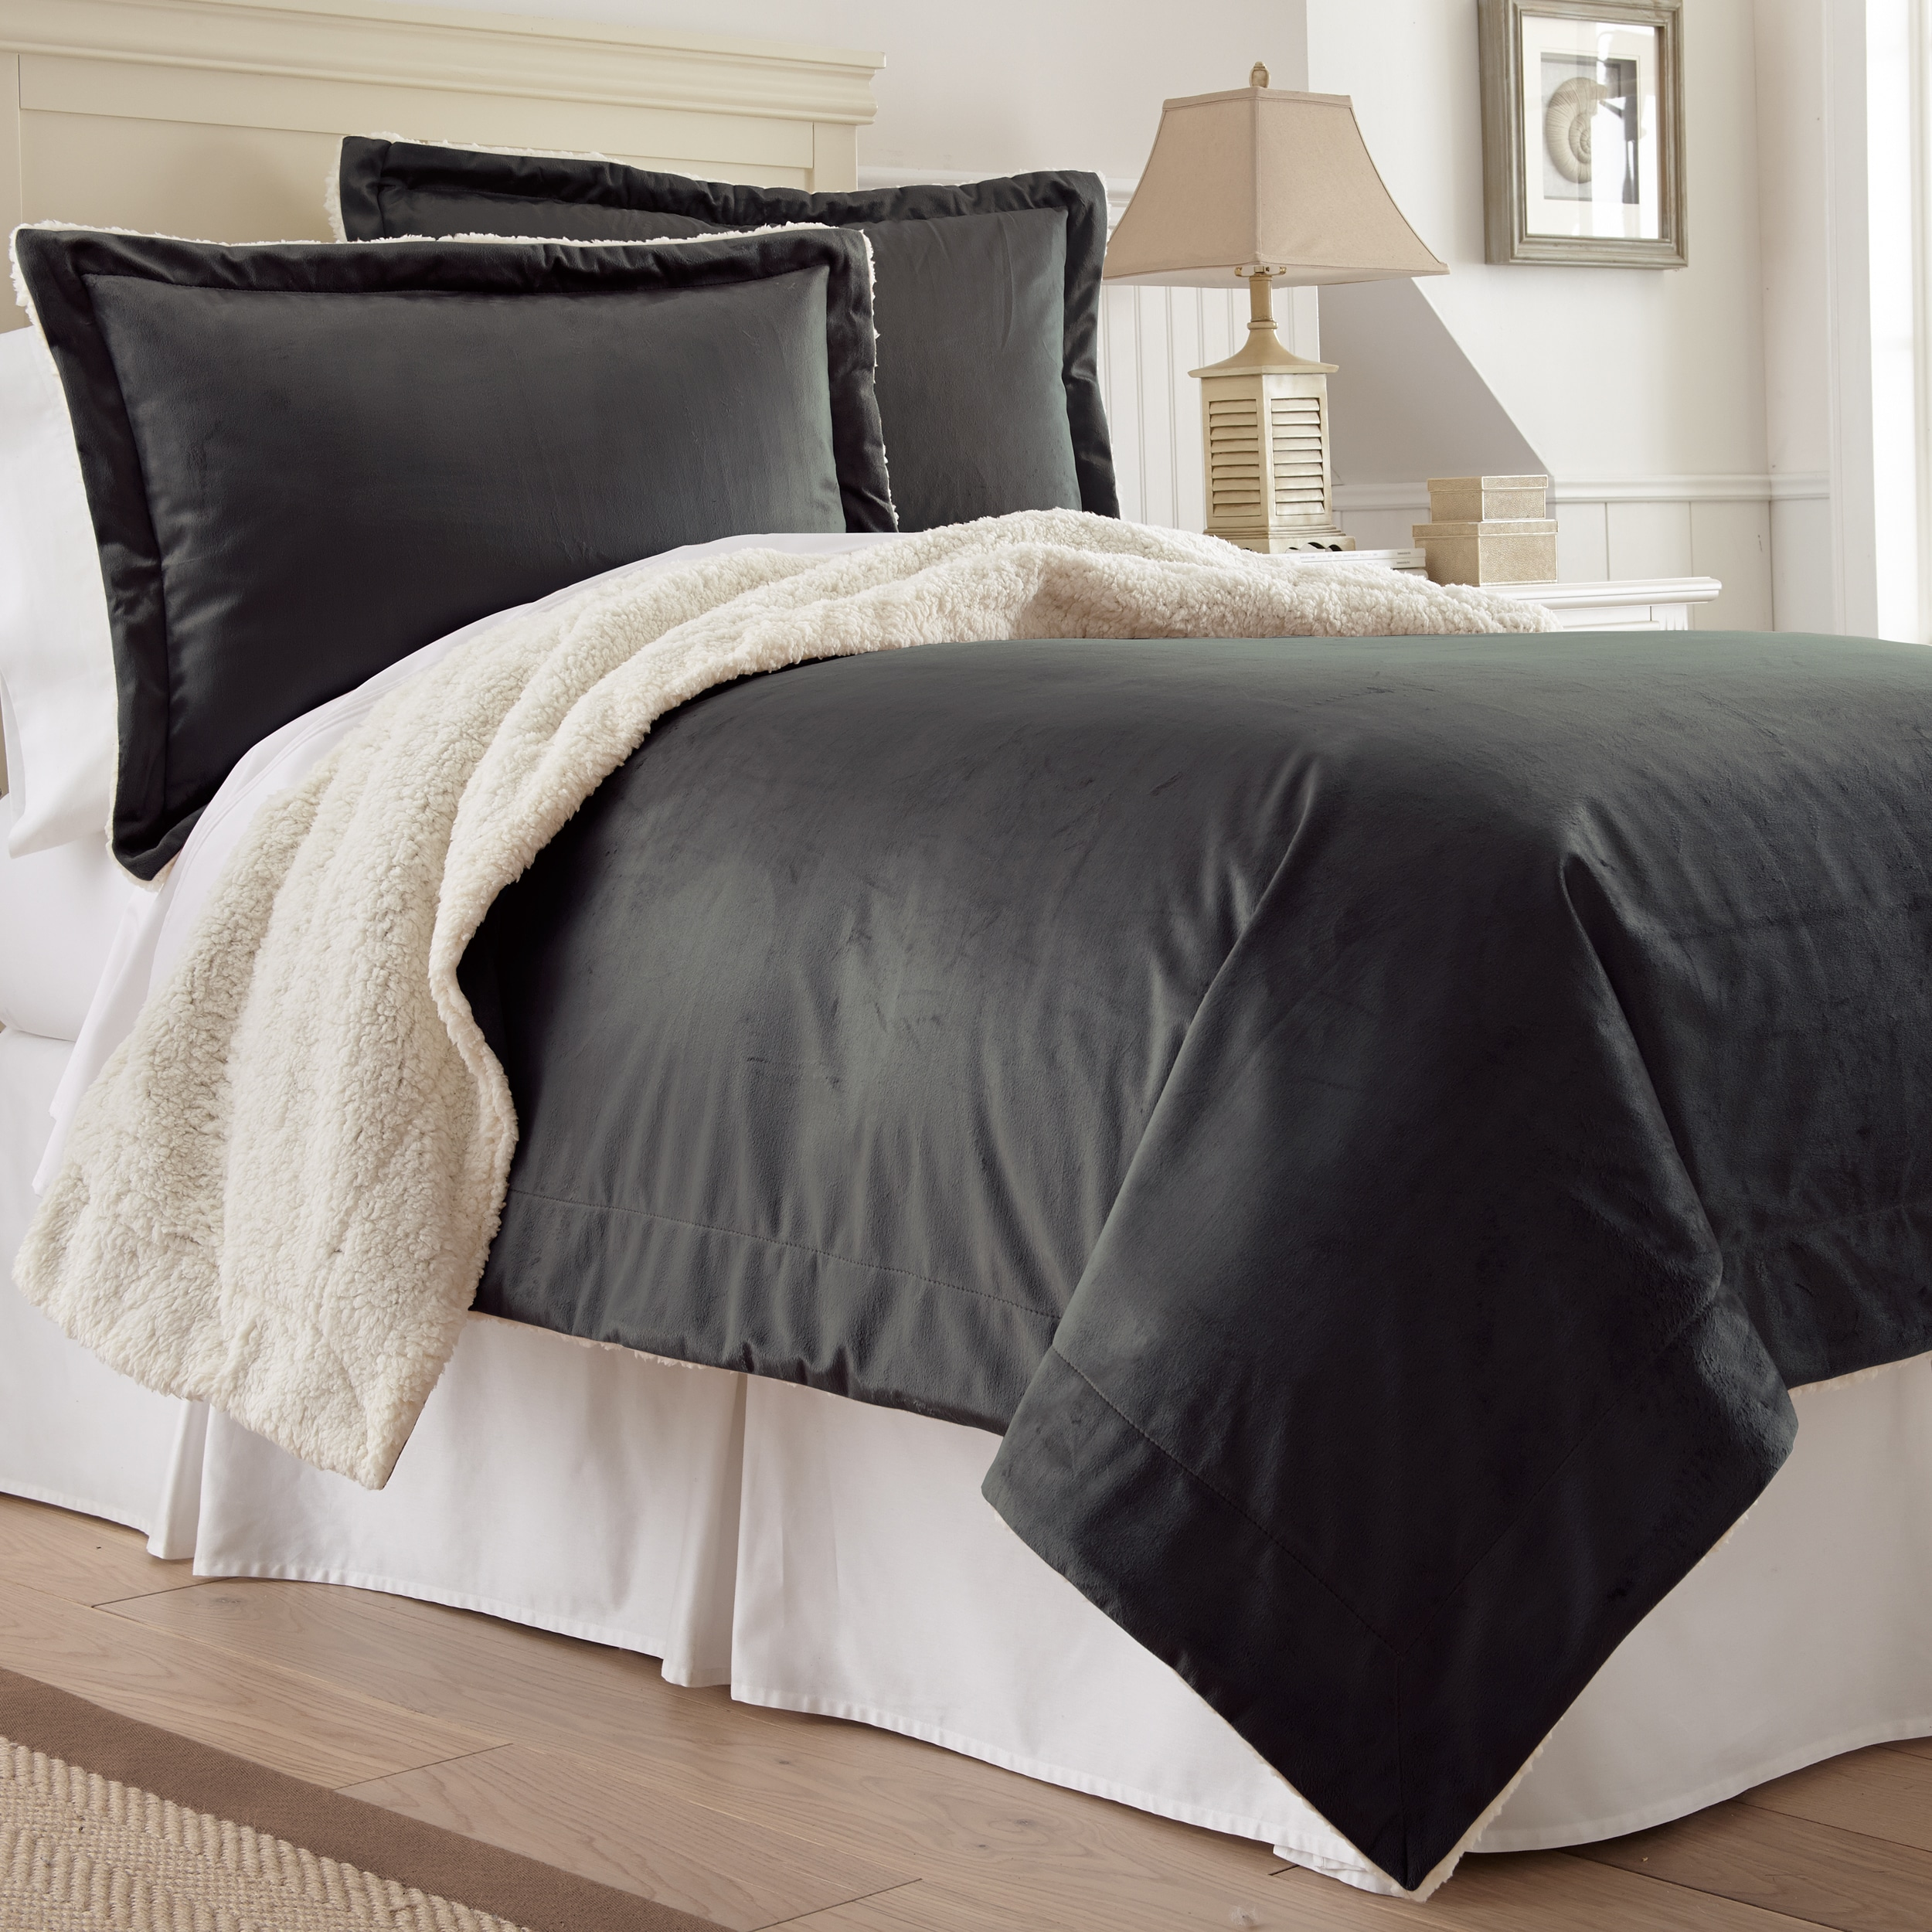 Amrapur Overseas Inc. Plush Sherpa 2 Piece Comforter Set - Charcoal - Twin